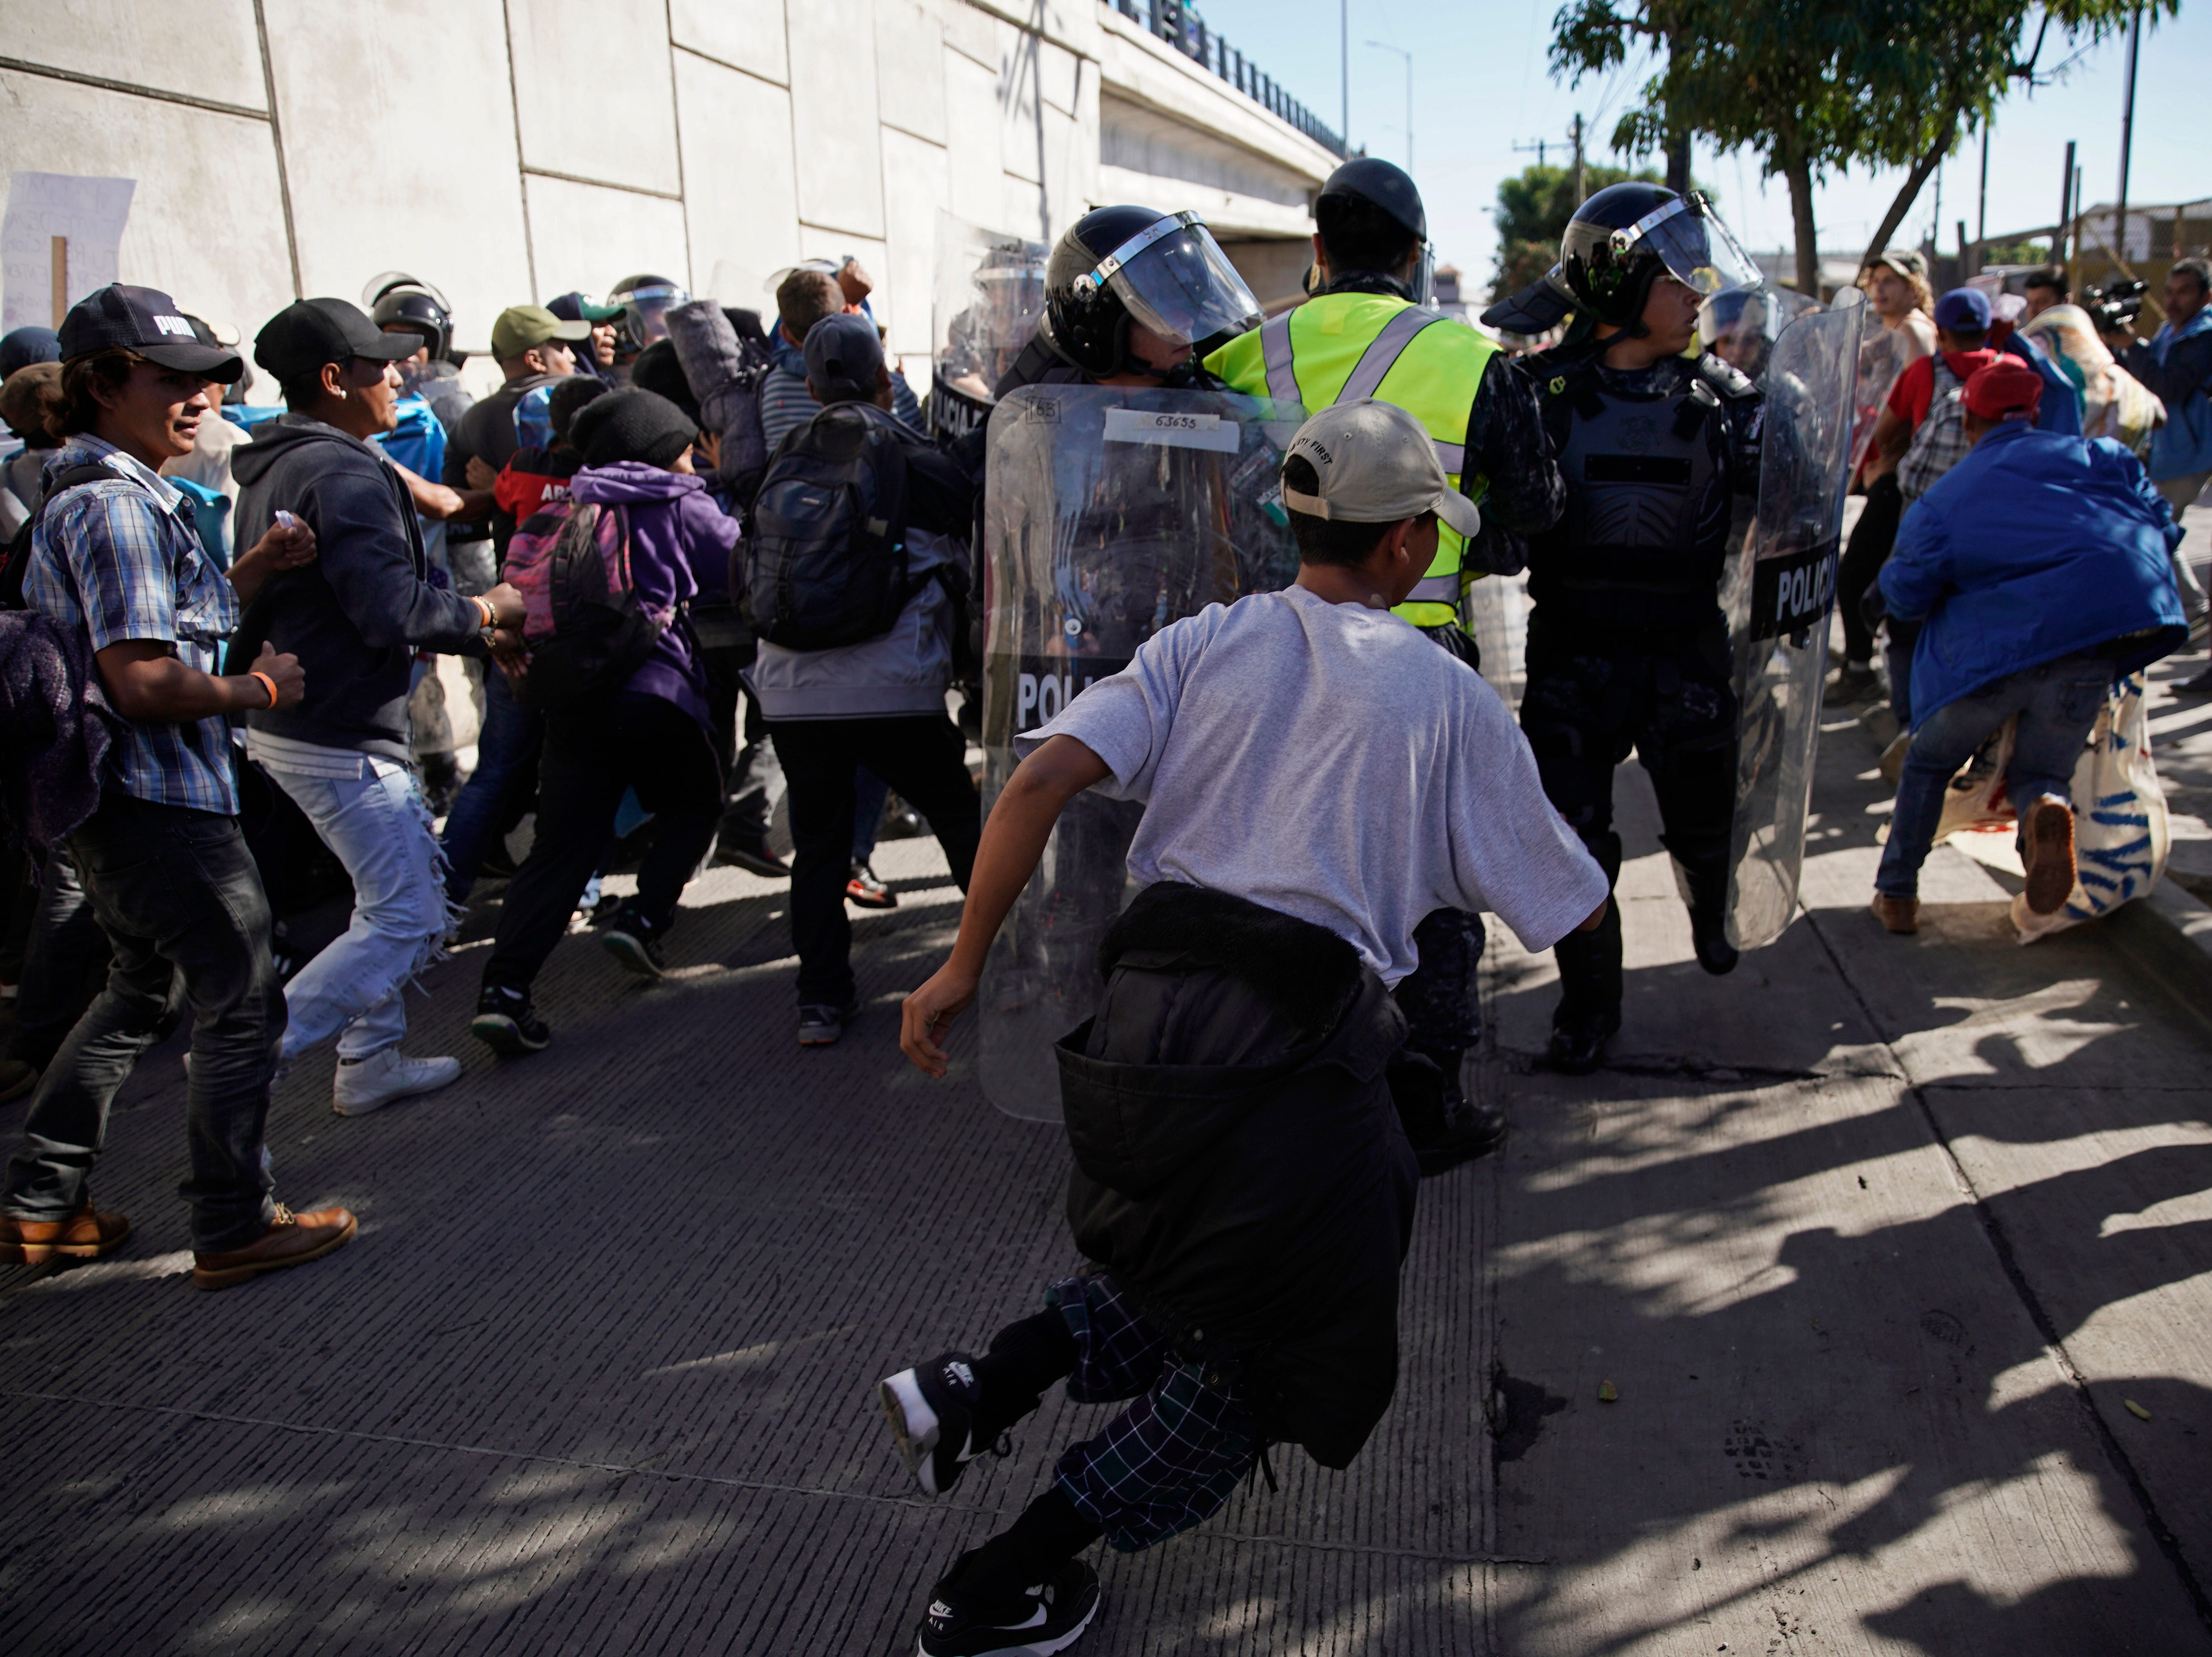 Migrants break past a line of police as they run toward the Chaparral border crossing in Tijuana, Mexico, Sunday, Nov. 25, 2018, near the San Ysidro entry point into the U.S. More than 5,000 migrants are camped in and around a sports complex in Tijuana after making their way through Mexico in recent weeks via caravan.